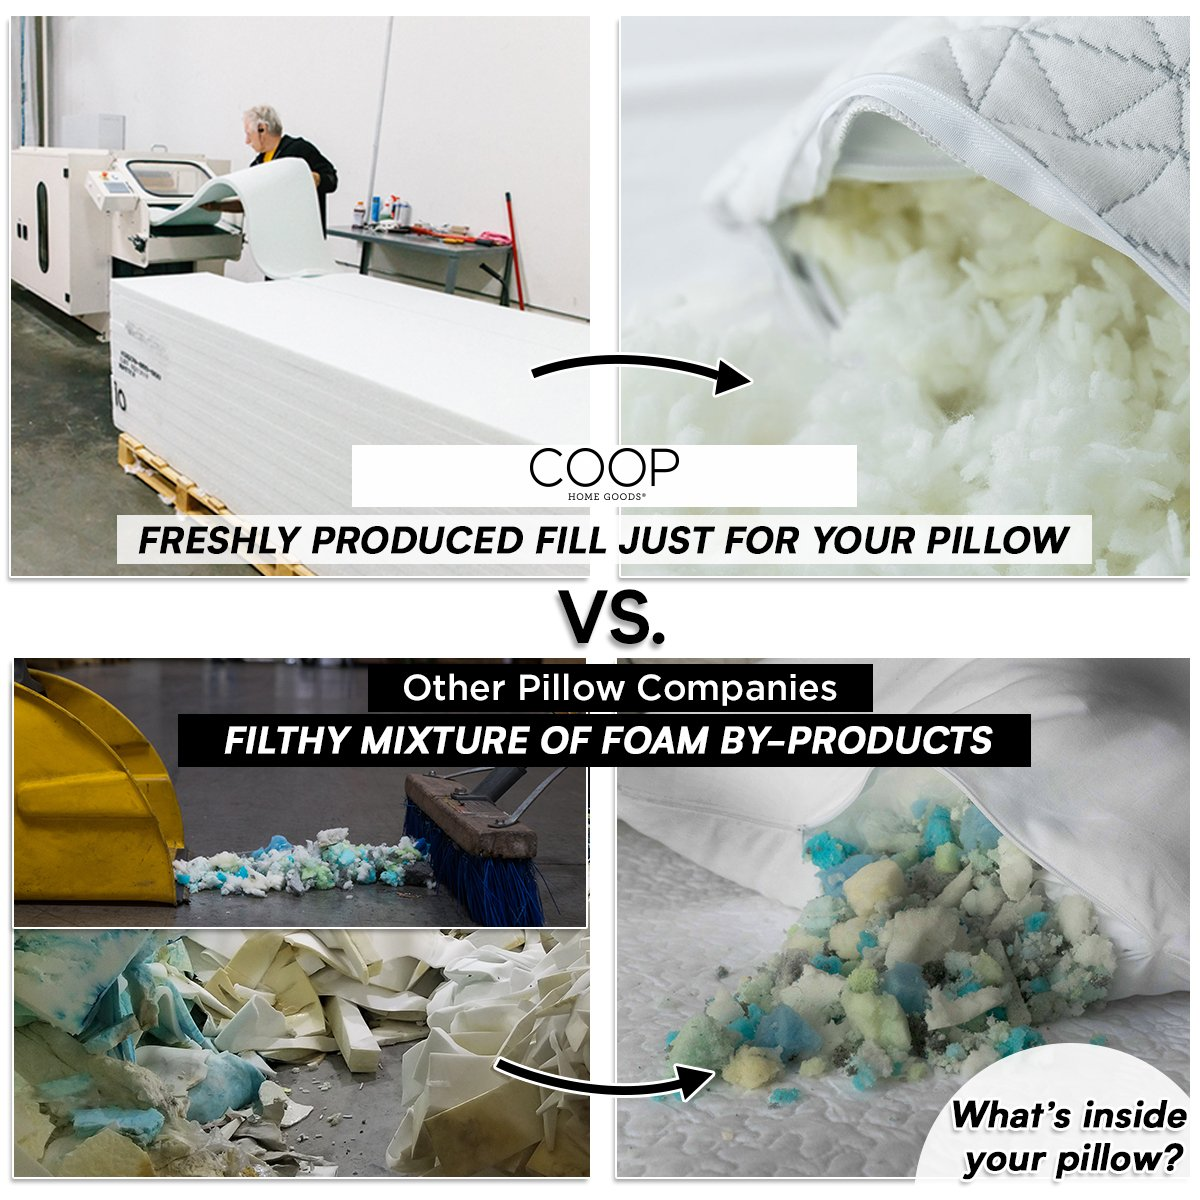 Coop Home Goods Premium Adjustable Loft-Shredded Hypoallergenic Certipur Memory Foam Pillow